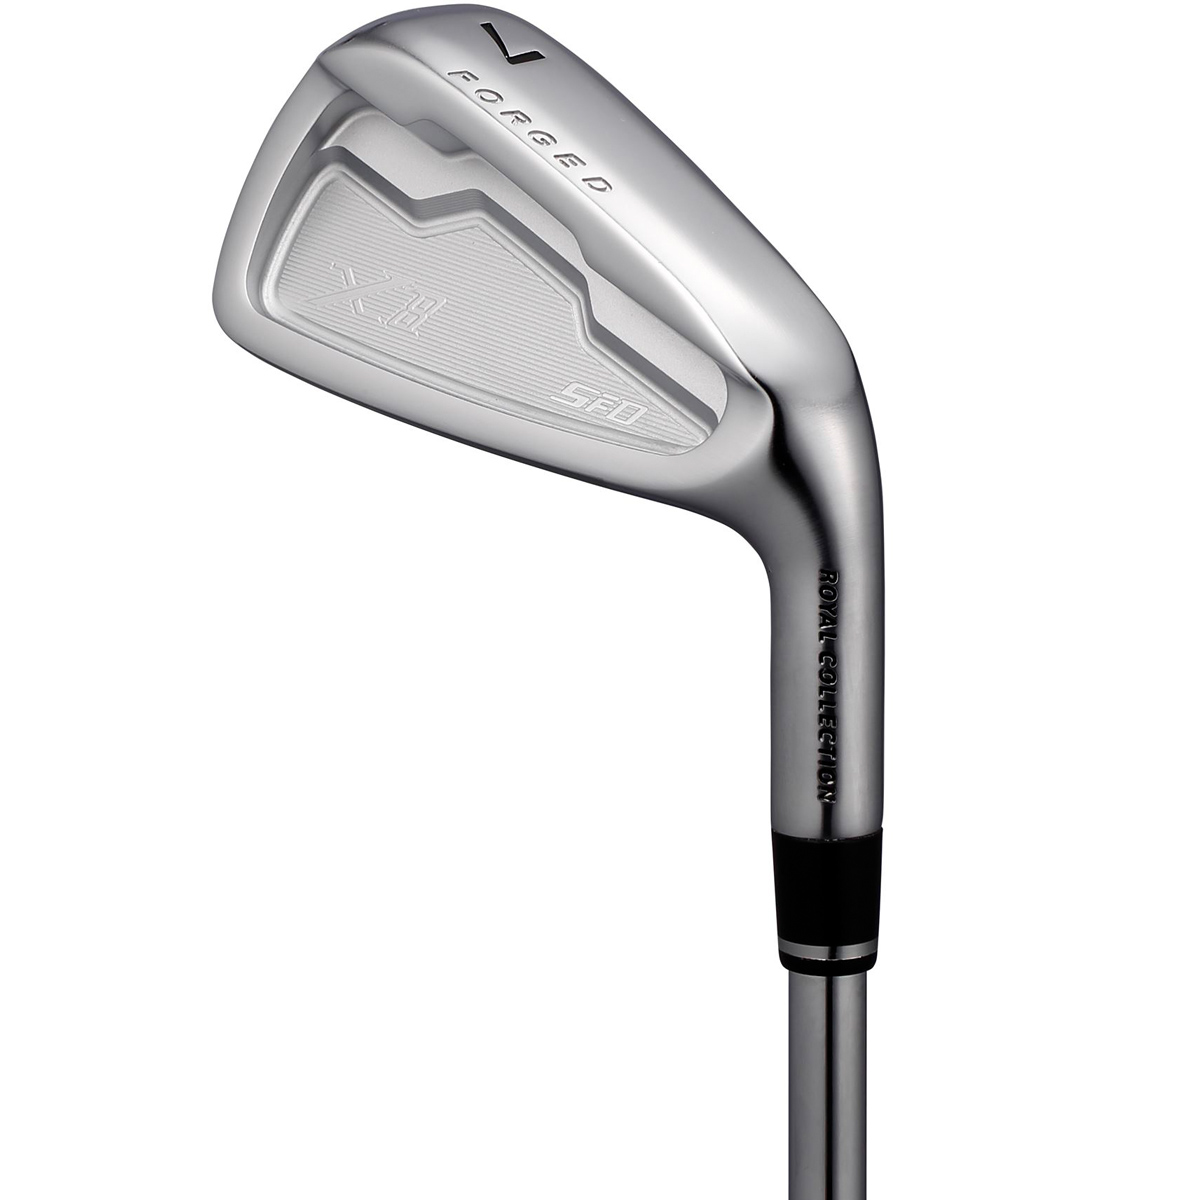 SFD X8 FORGED アイアン(5本セット) N.S.PRO MODUS3 TOUR 105